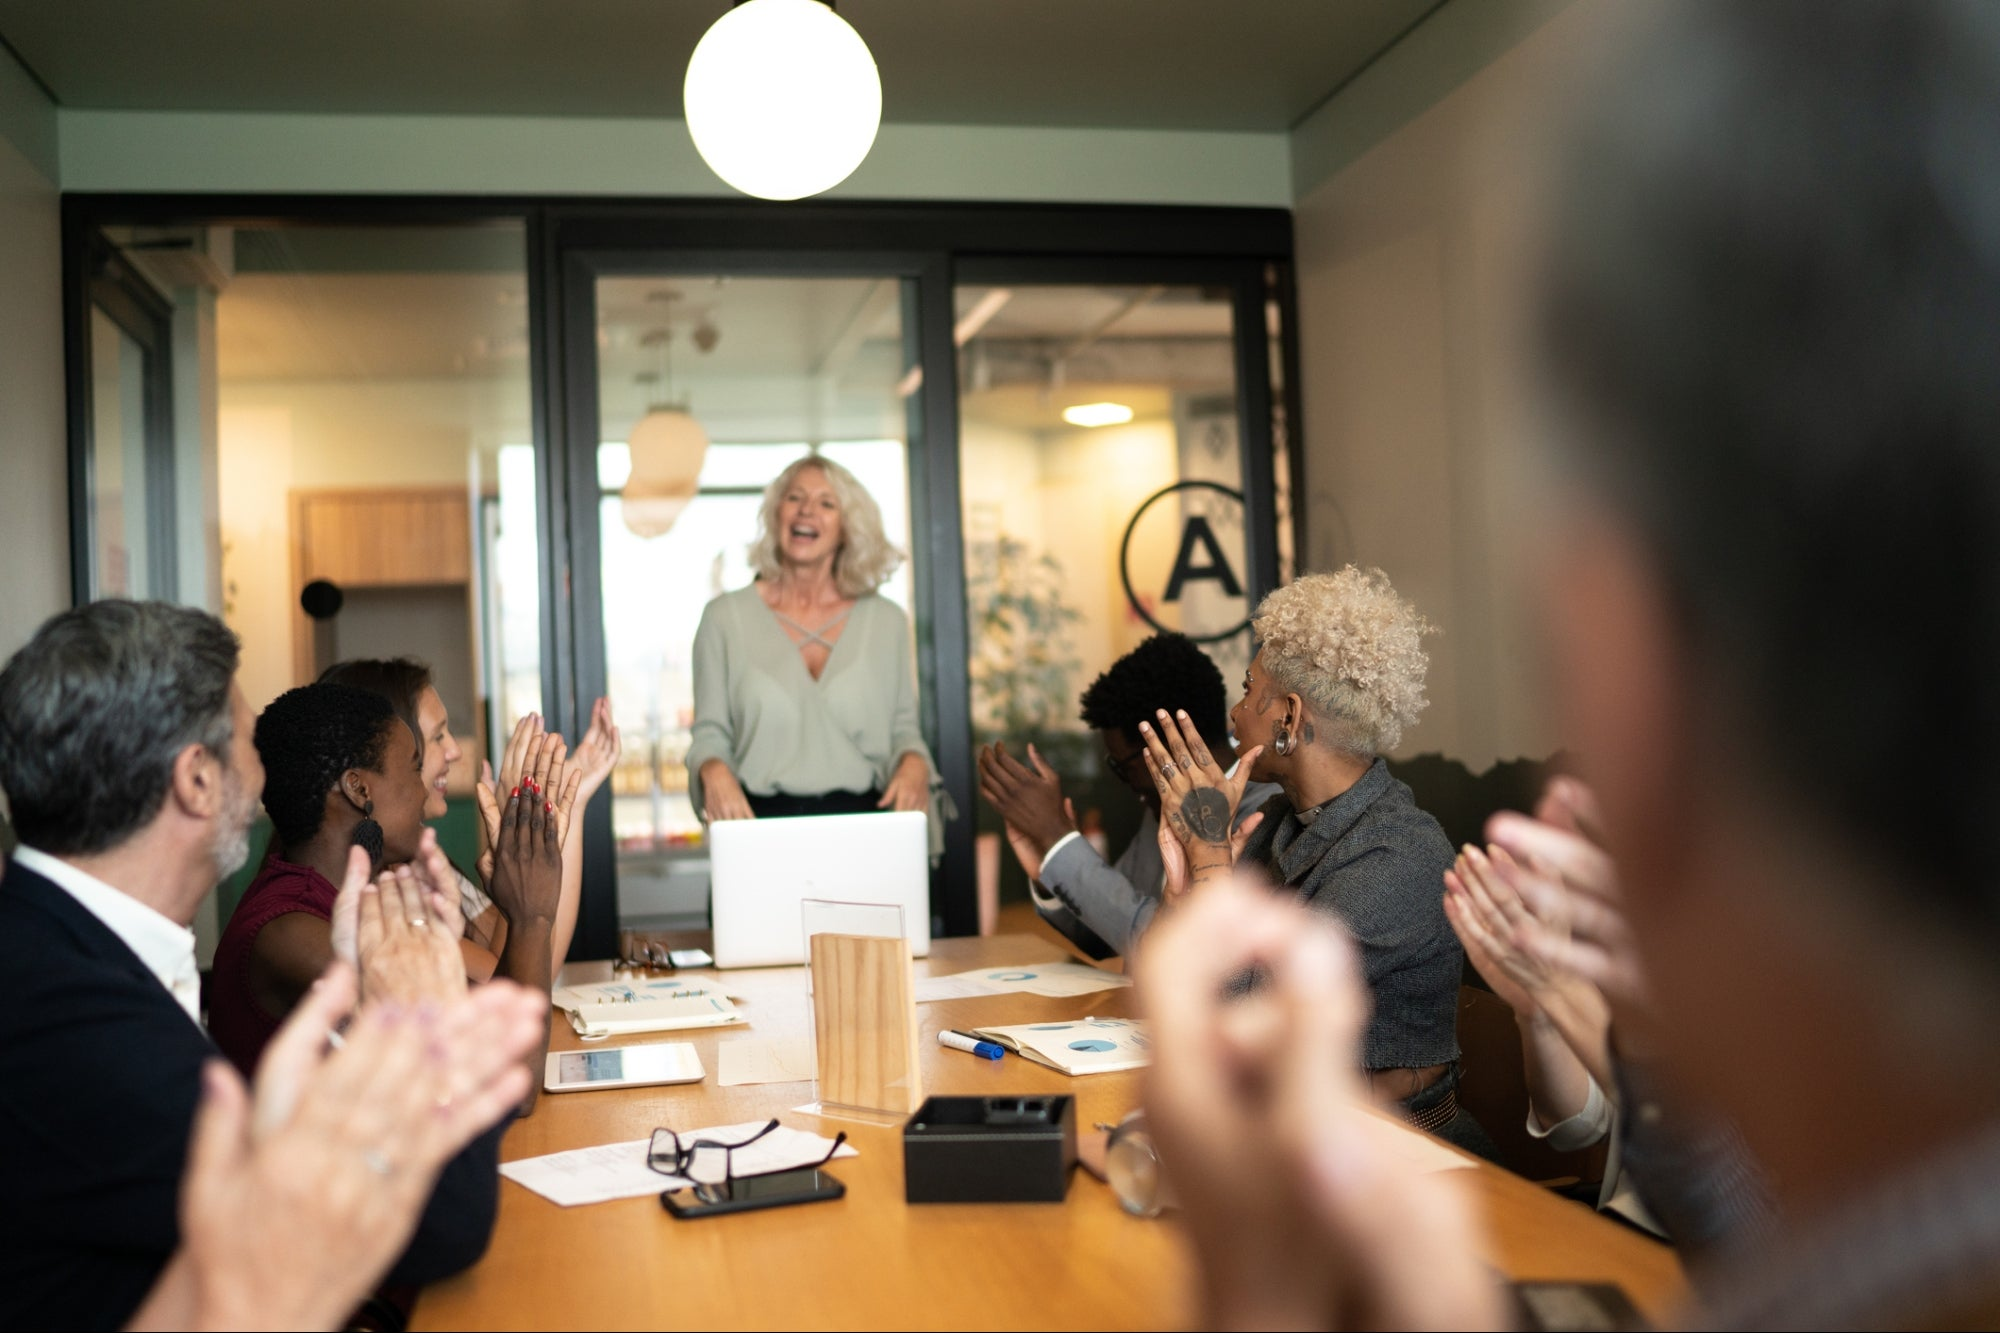 How to Lead With Your Values, Regardless of Industry